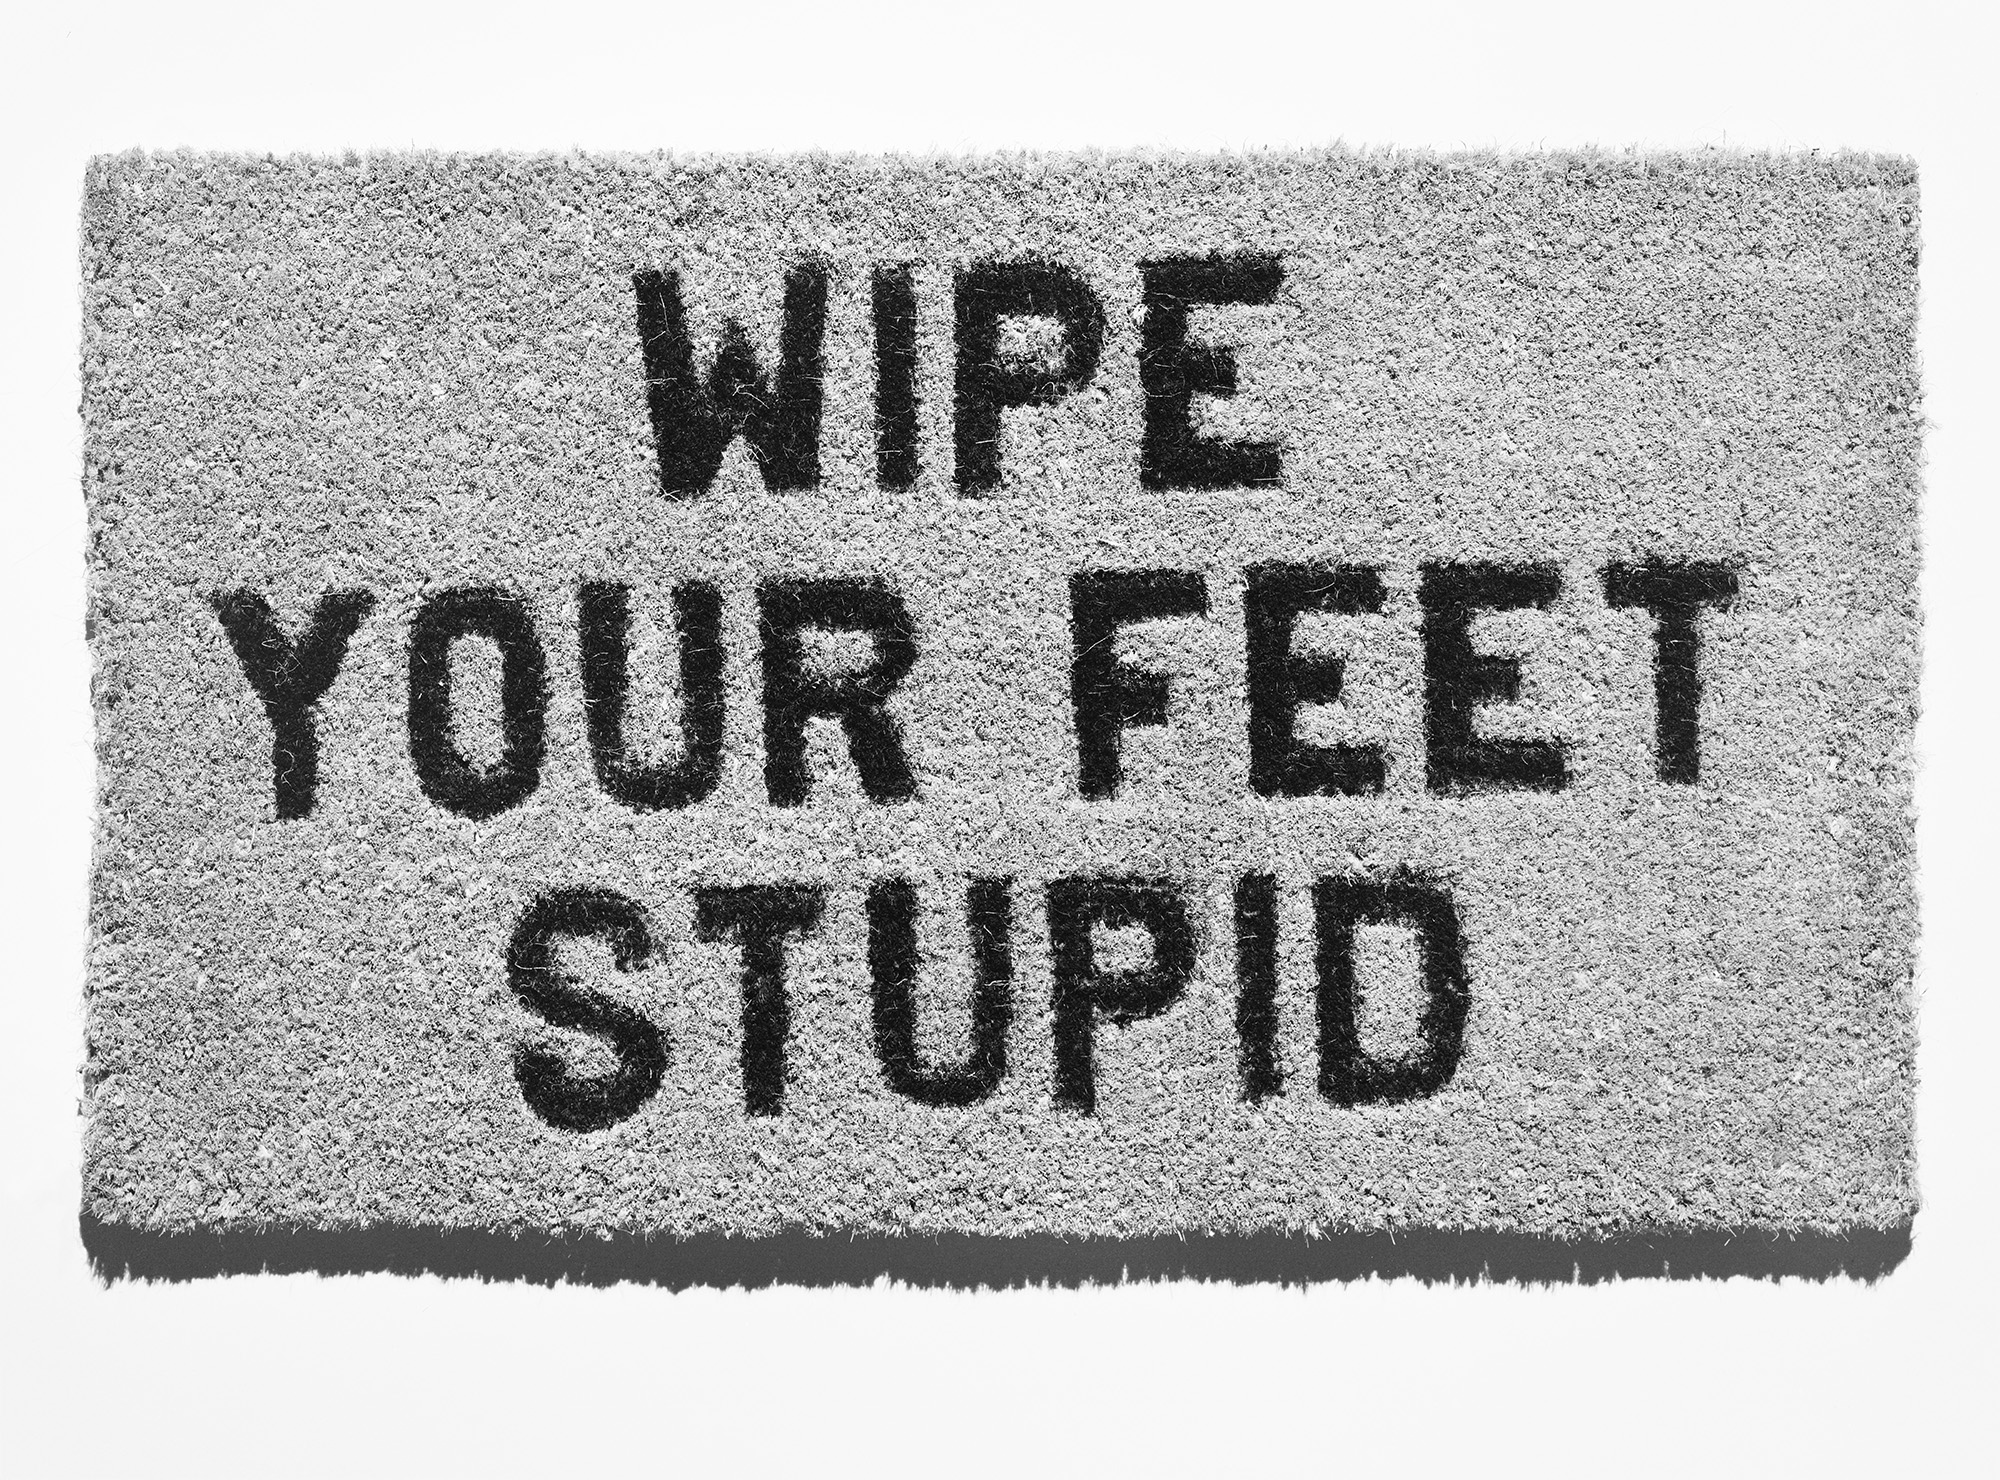 Wipe Your Feet Stupid, 1987